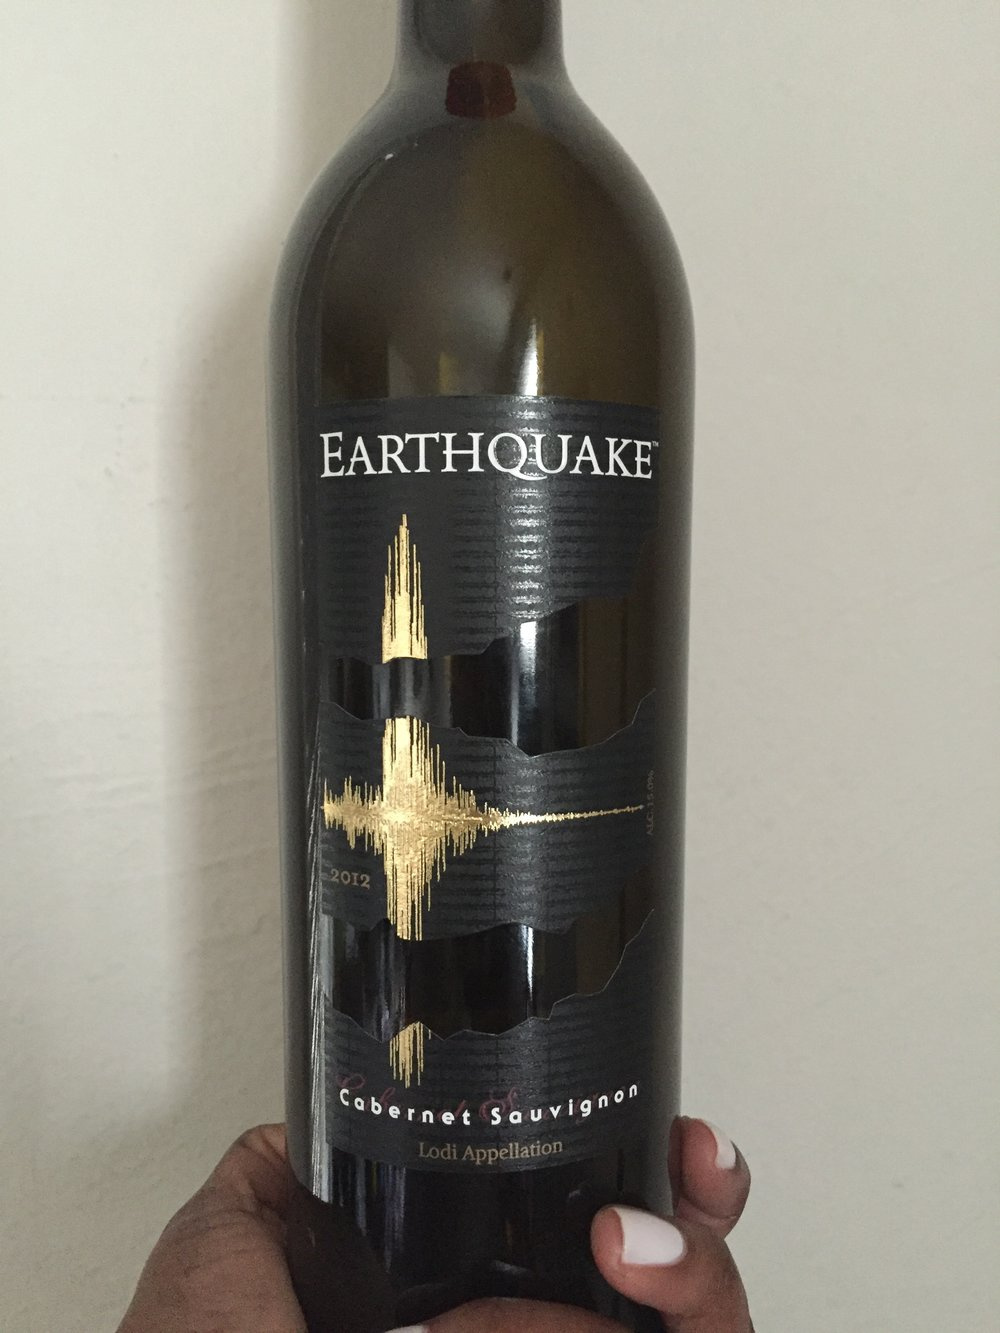 Earthquake Cabernet